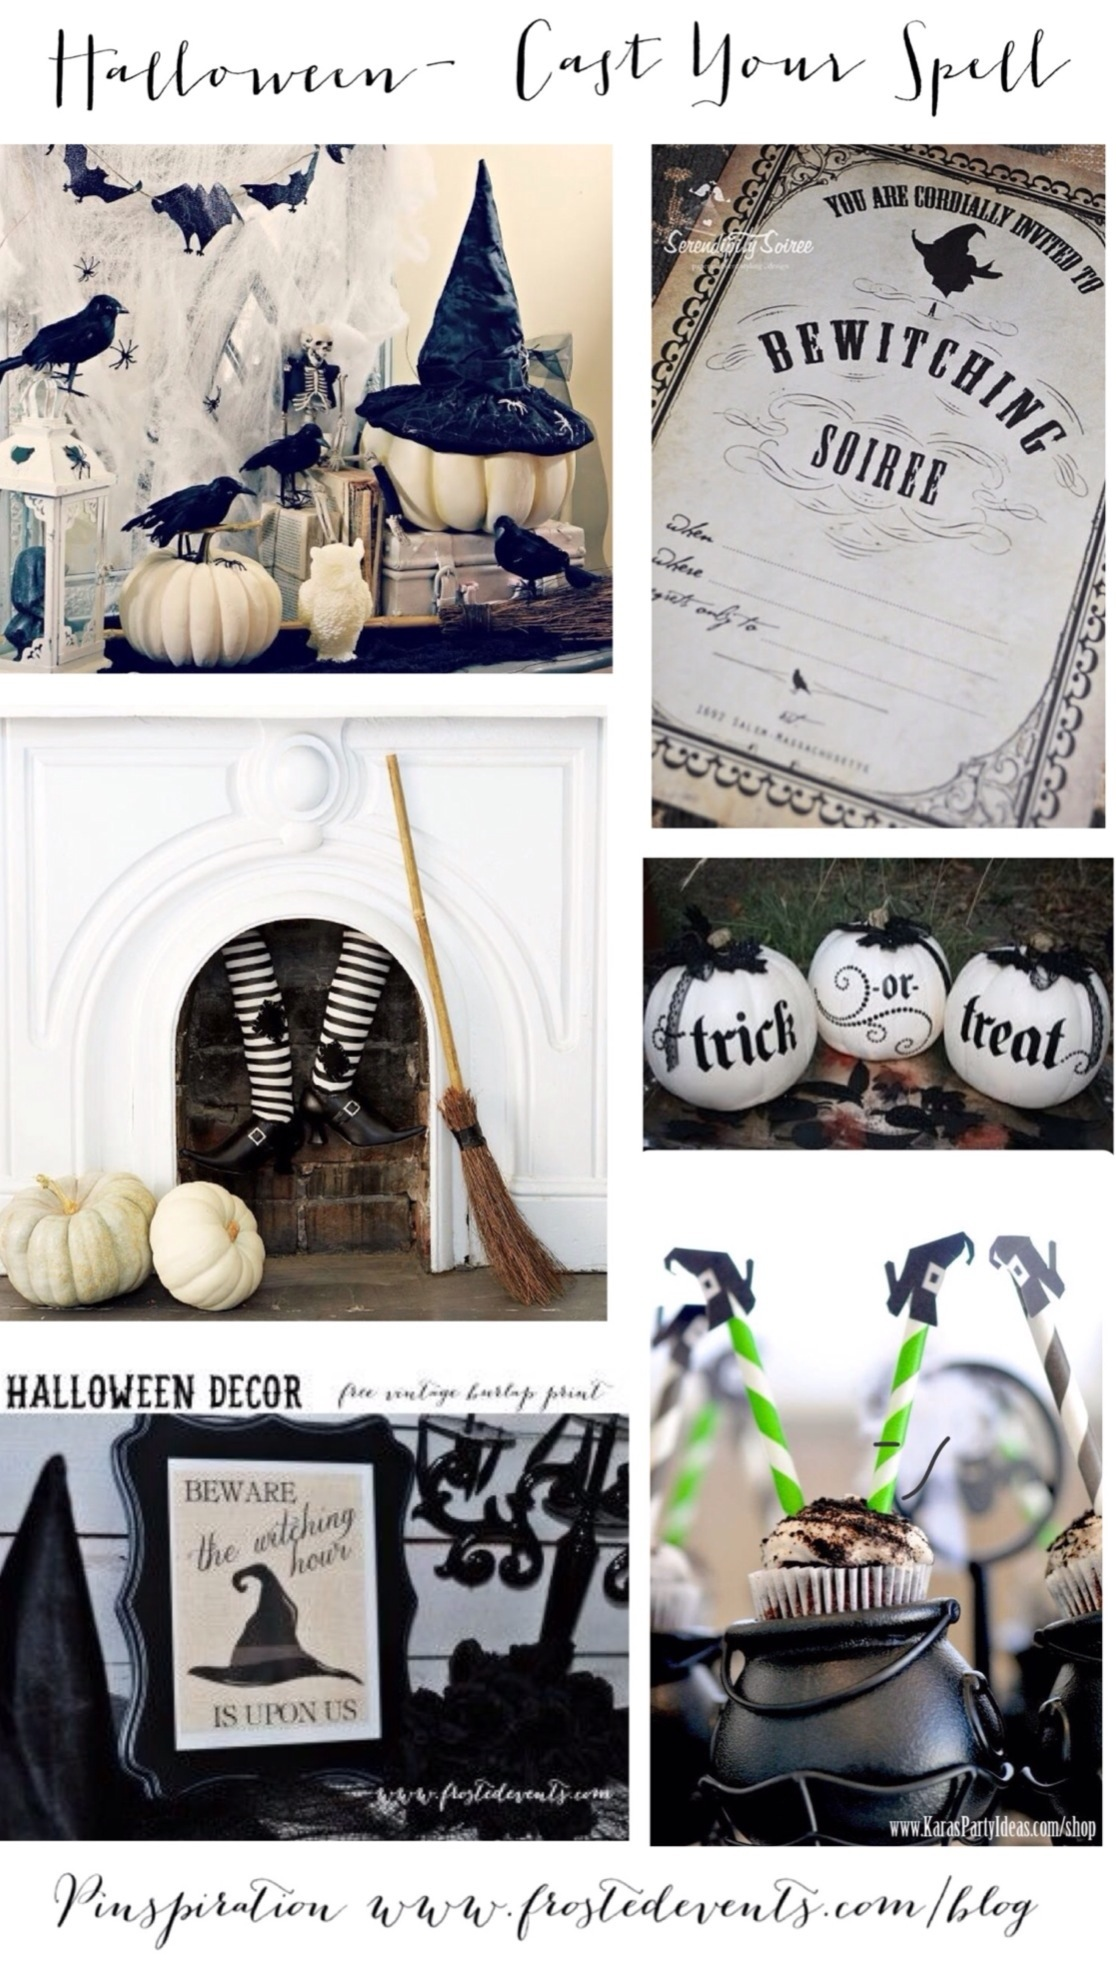 Halloween- Cast Your Spell- Witch Themed Halloween Ideas & Inspiration www.frostedevents.com